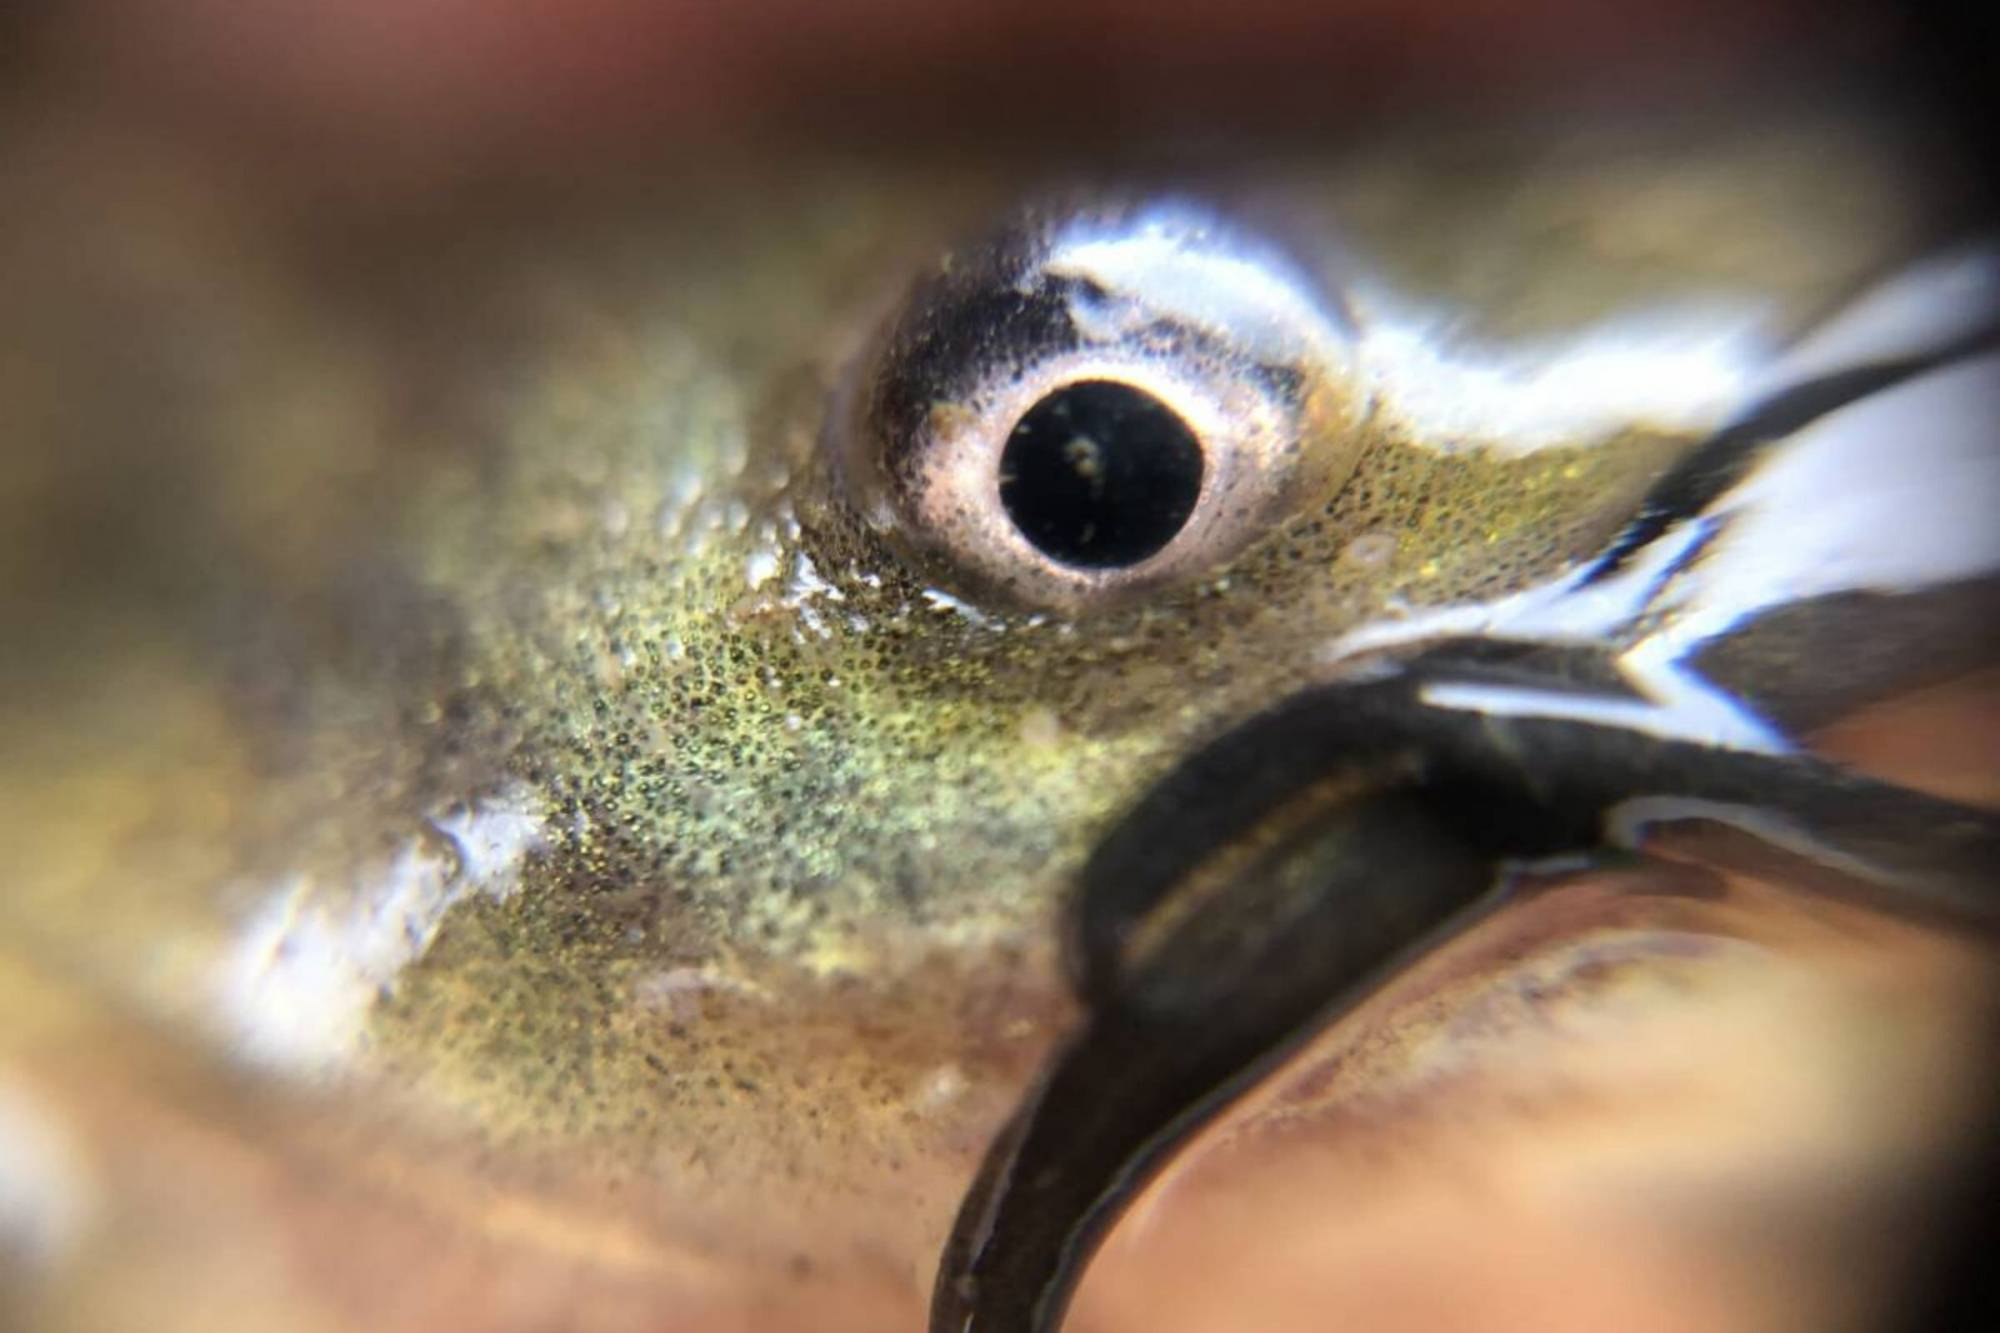 A close view of the eye and whiskers of a young brown bullhead catfish found within one of our mussel baskets at Kingman Lake.